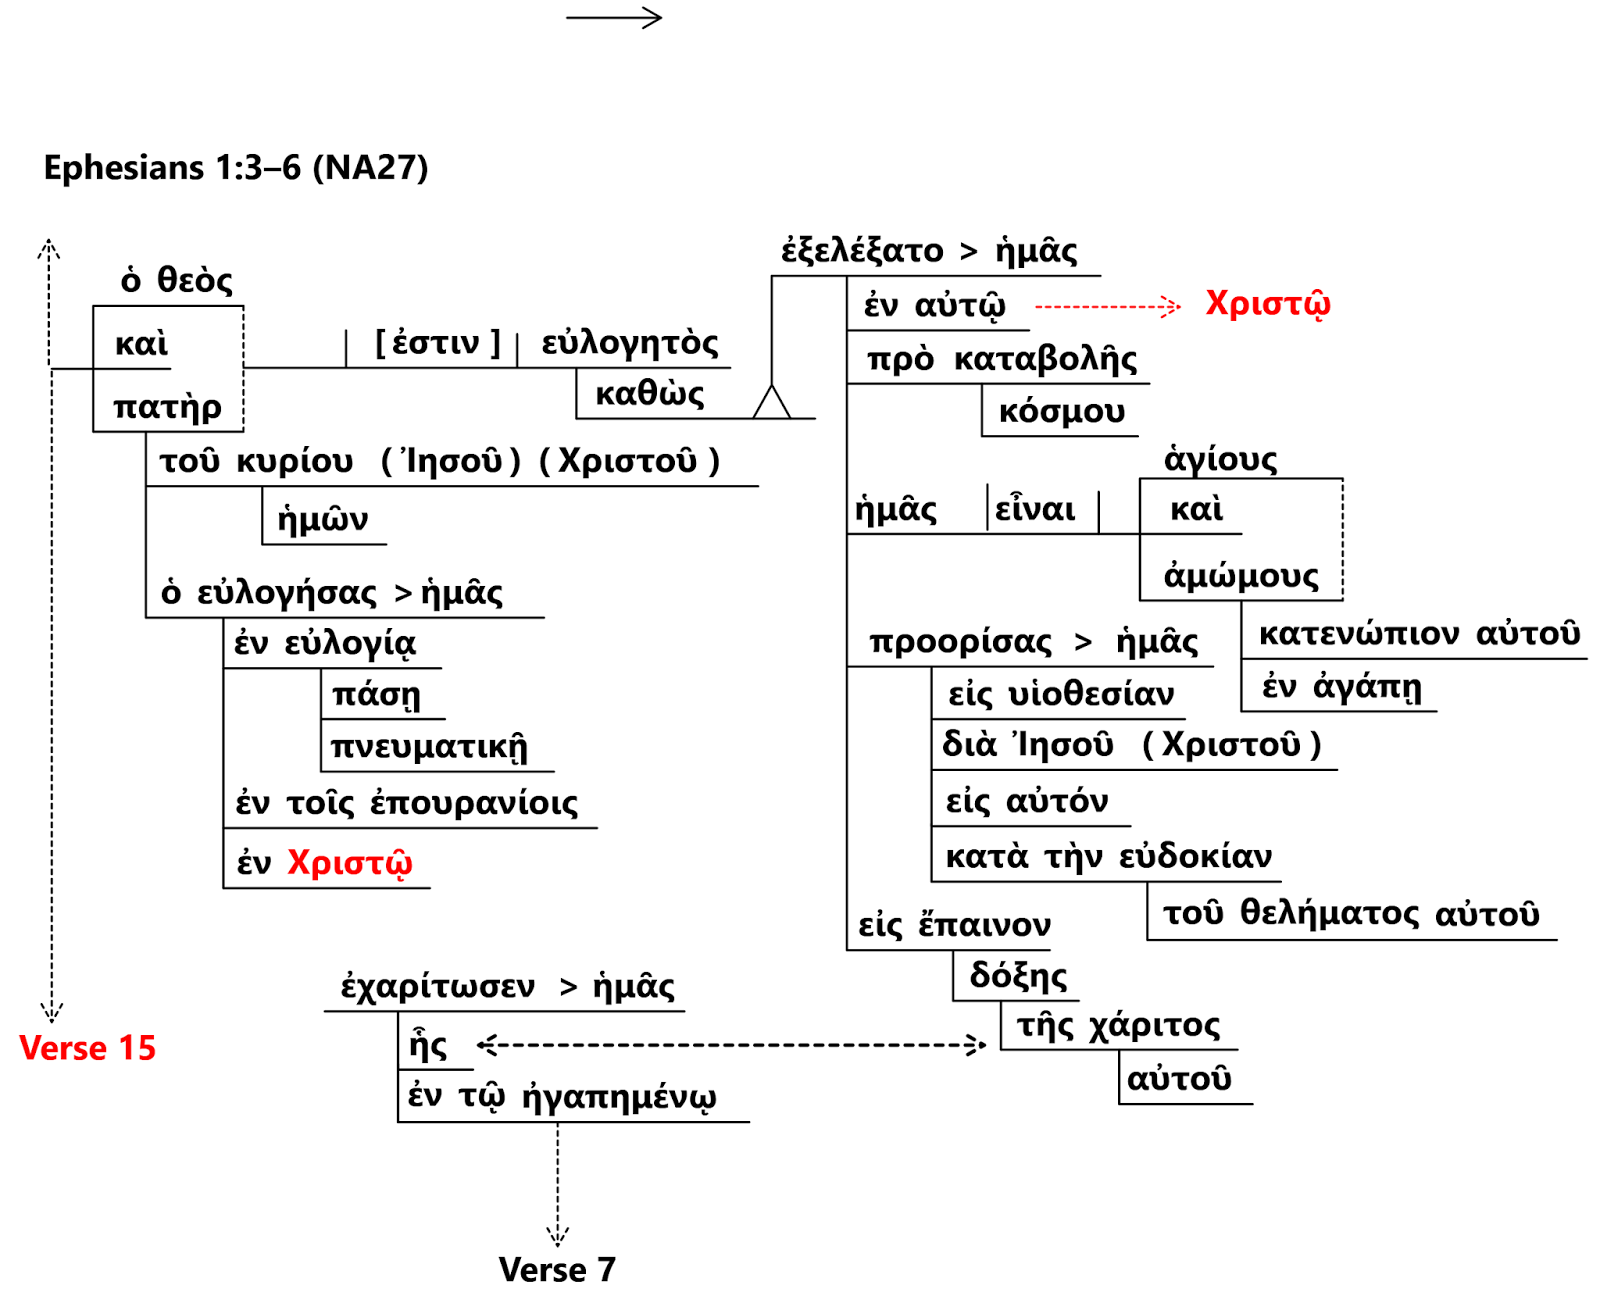 small resolution of biblical languages and bible translations ephesians 1 2 6 diagram of ephesians